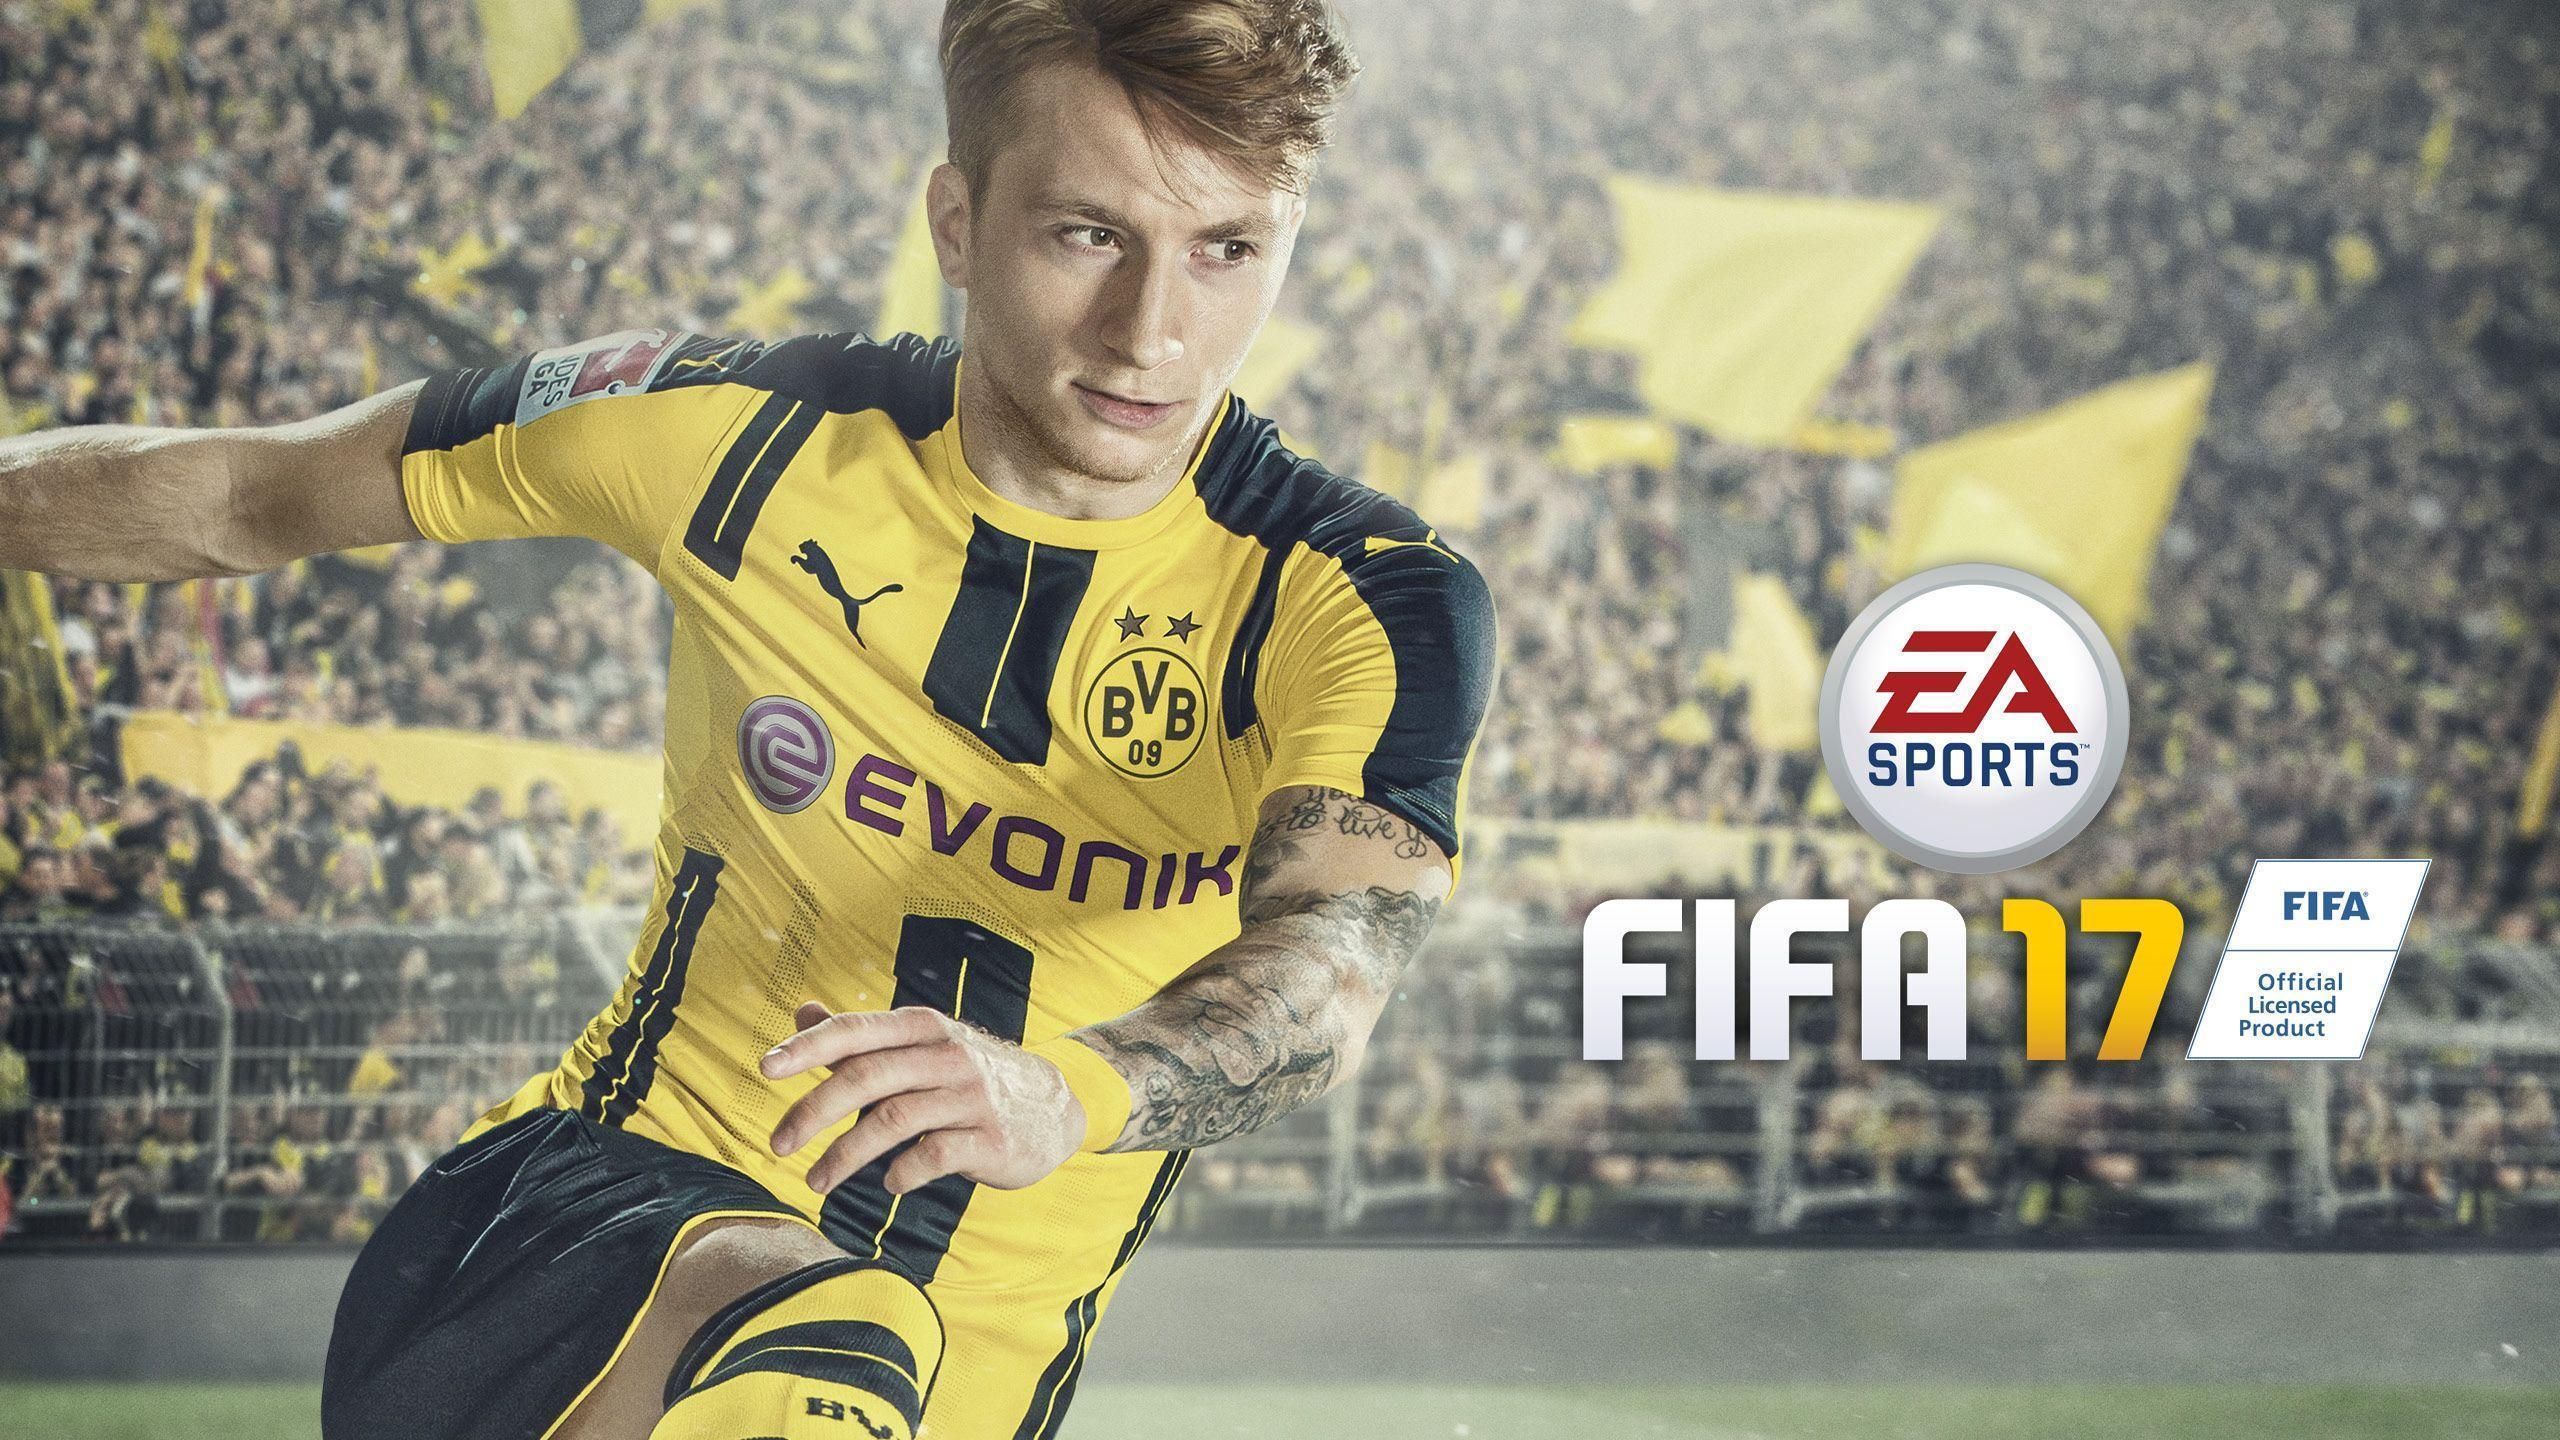 Wallpaper Marco Reus, FIFA 17, EA Sports, Football game, HD, Games ...